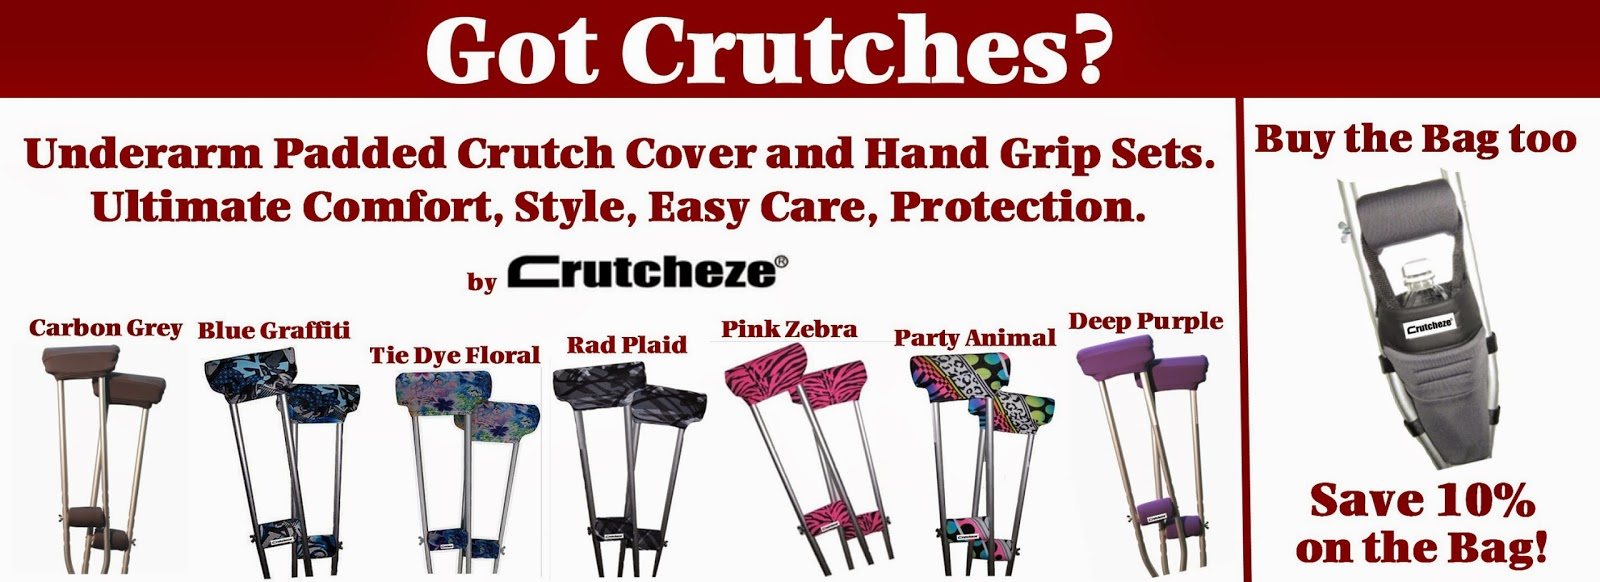 Crutcheze pads and hand grips for crutches